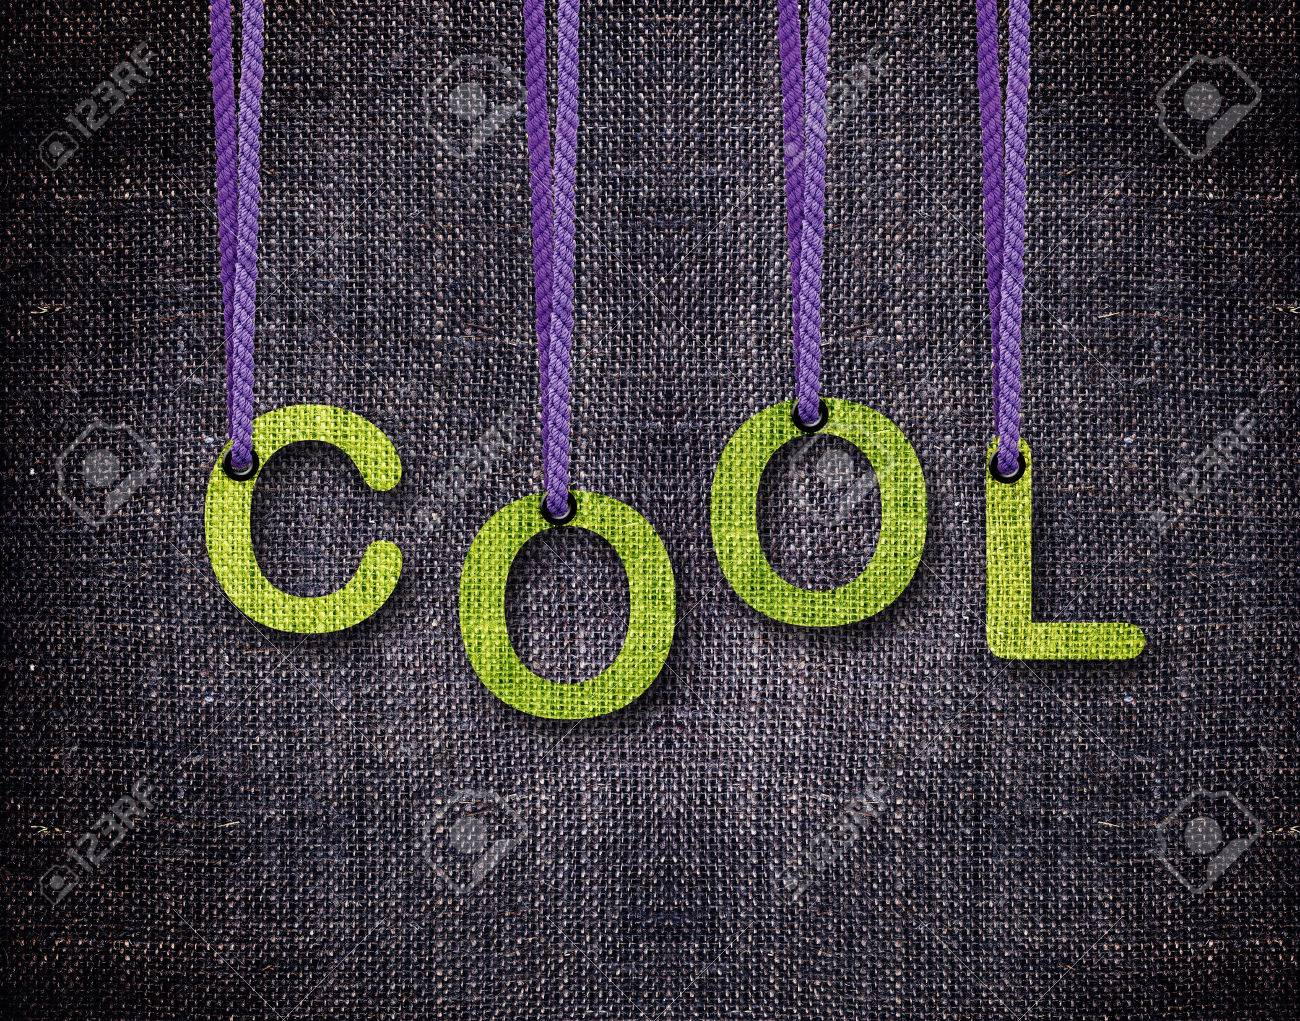 Cool Letters hanging strings with blue sackcloth background. Stock Photo - 23518572